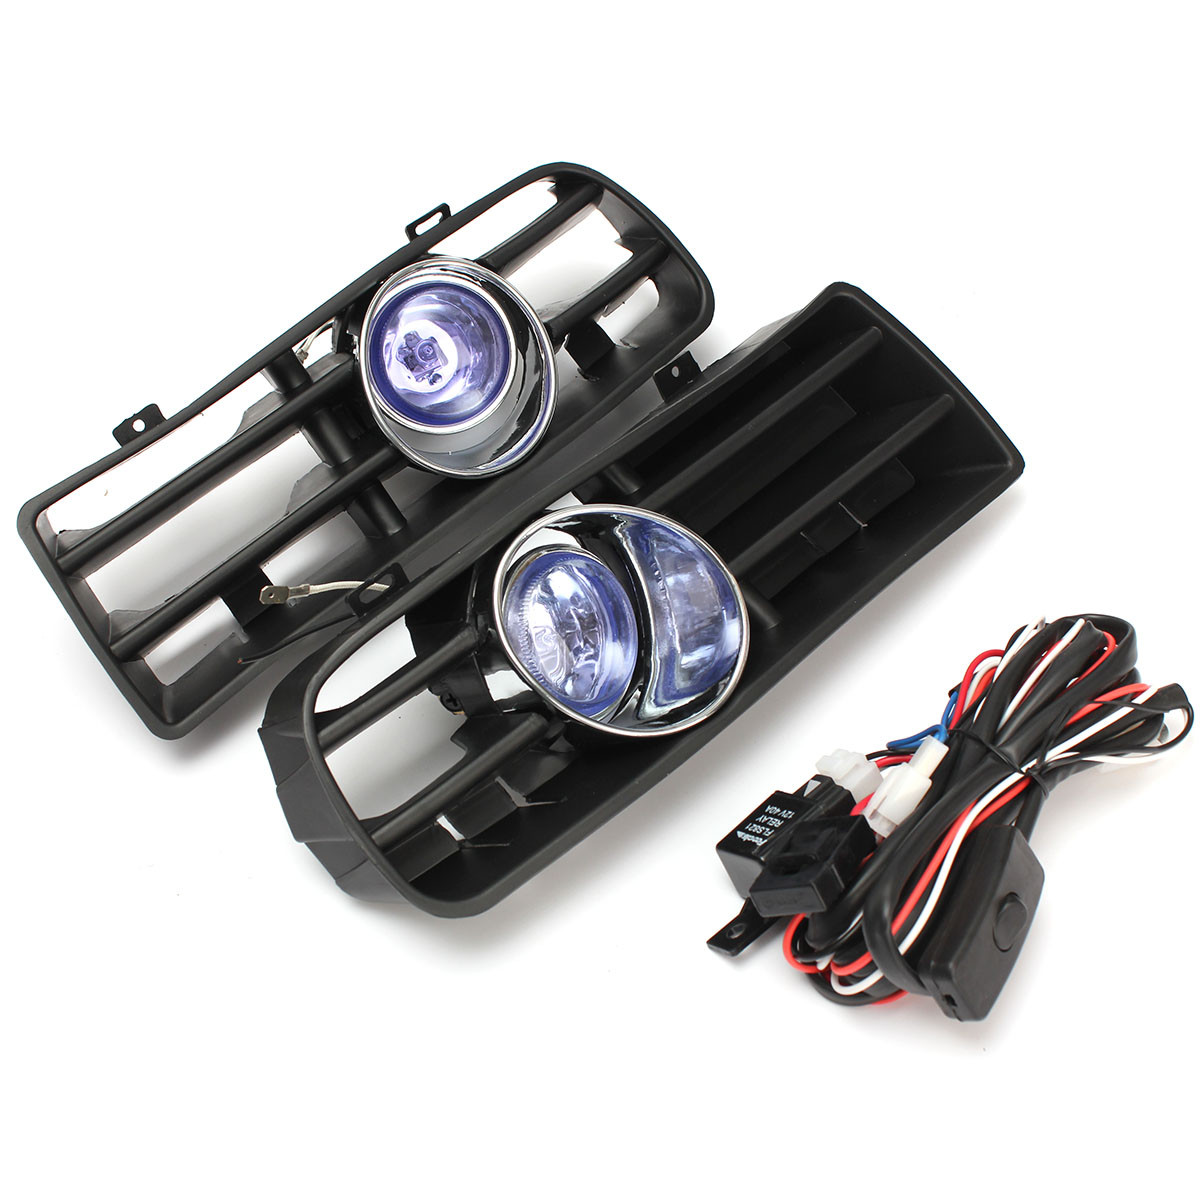 цена на 2Pcs Blue Front Fog LED Light Lamp Lower Bumper Grille for VW Golf MK4 1998 1999 2000 2001 2002 2003 2004